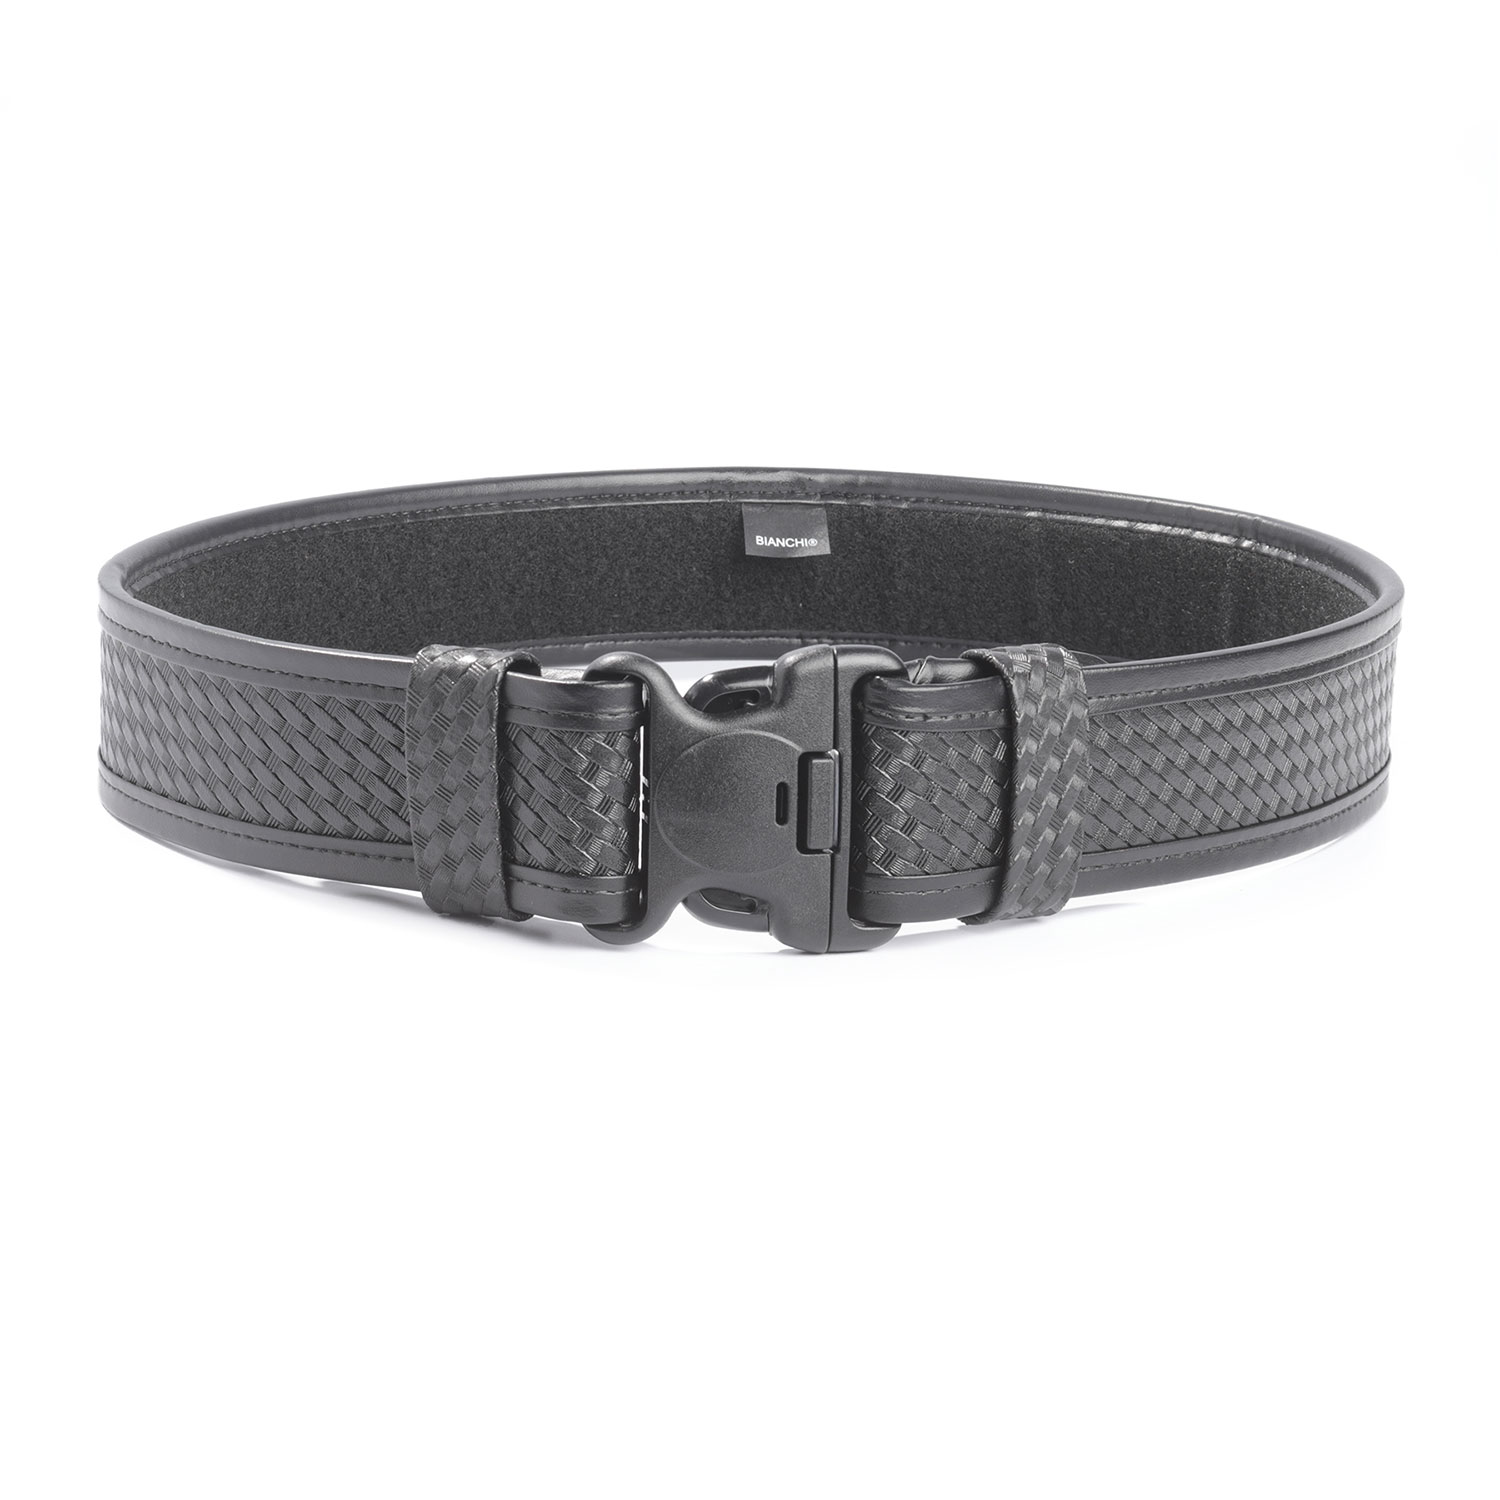 "Bianchi AccuMold Elite 2 1/4"" Duty Belt"